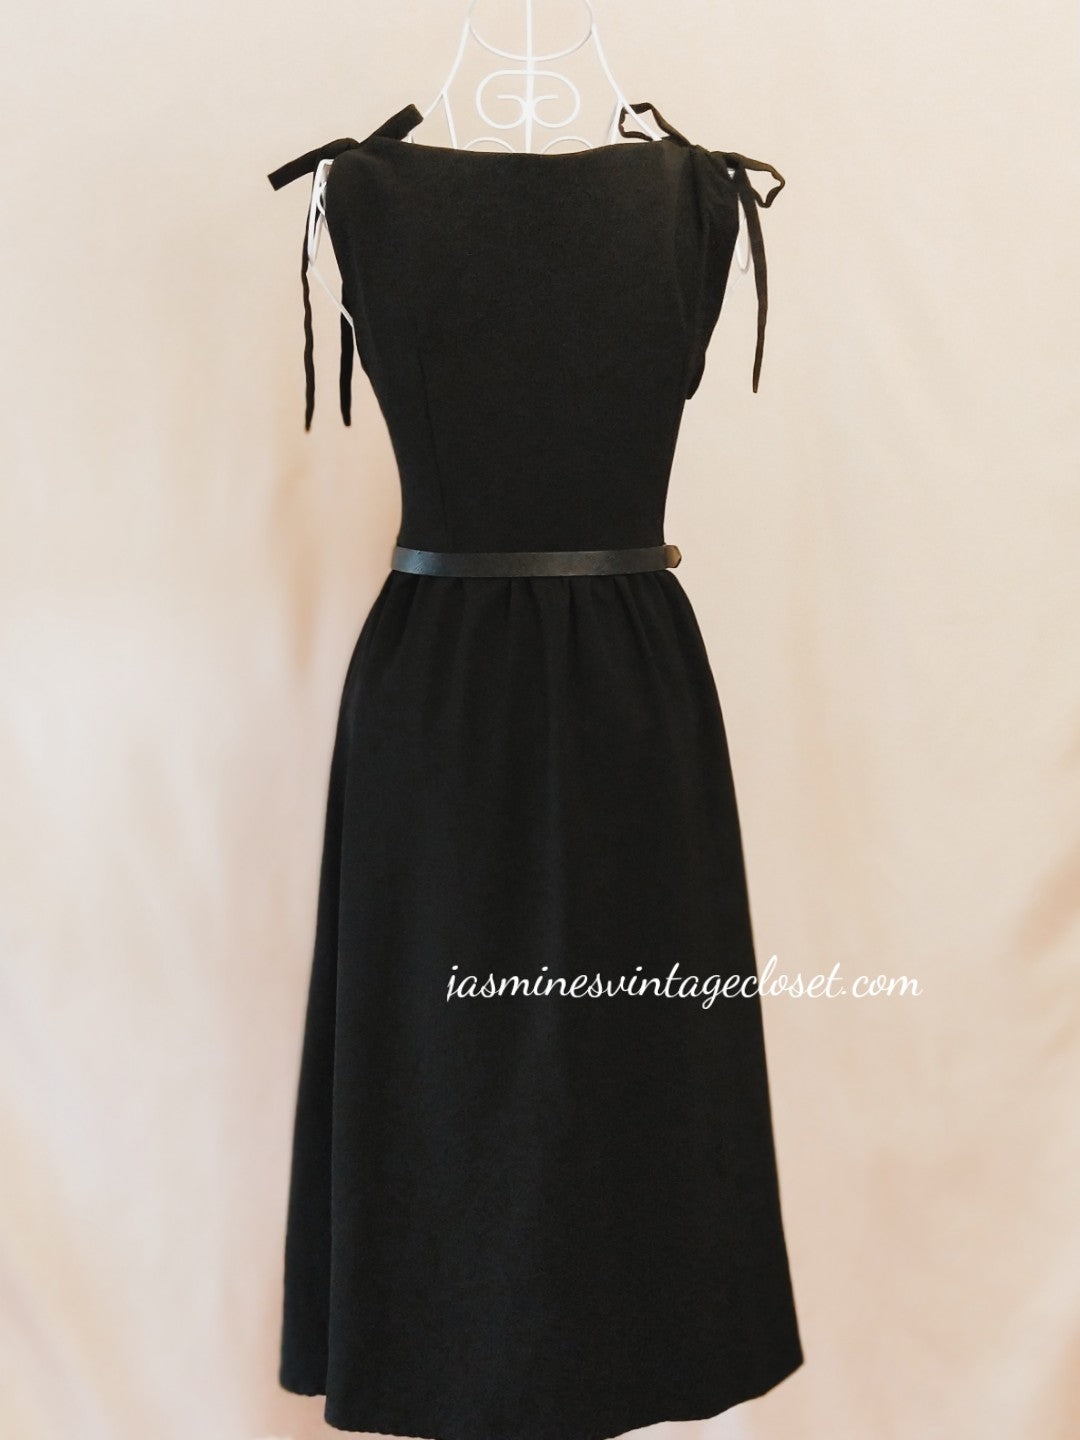 Hepburne's black midi dress